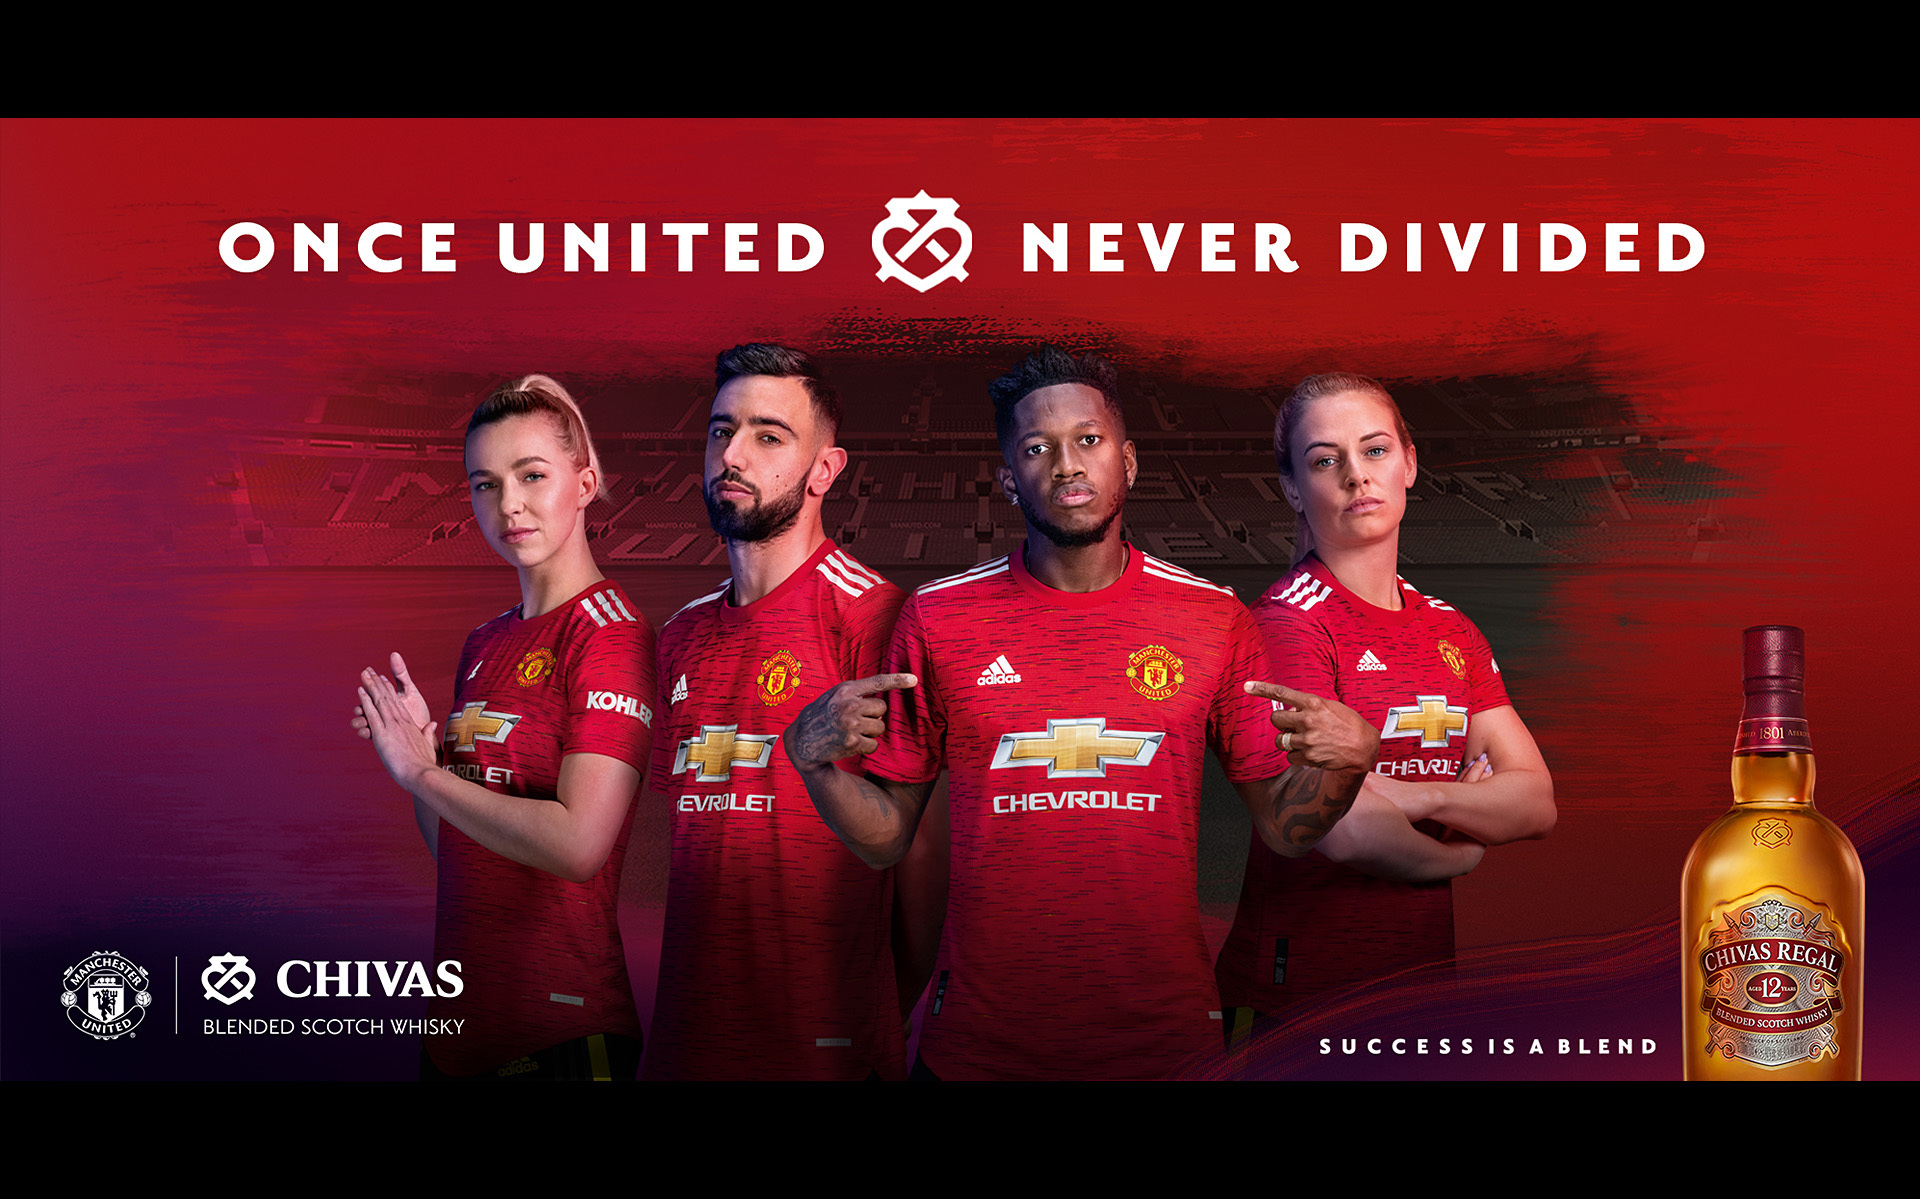 CHIVAS REGAL campaign with Manchester United. Groenen, Fernandes, Fred & Smith ©P Cooper